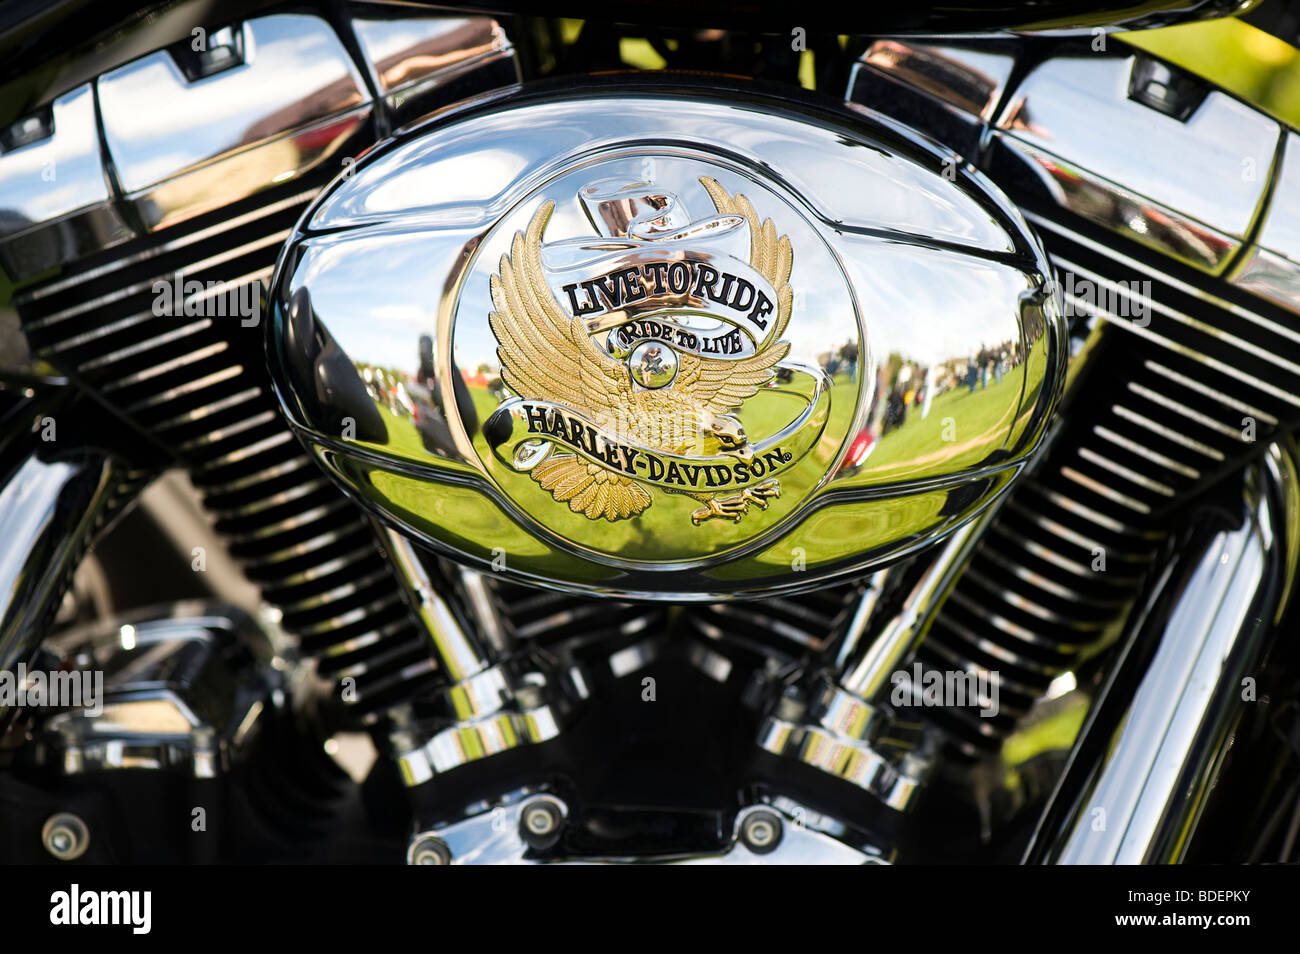 Harley Davidson motorcycle v-twin engine with 'live to ride' custom